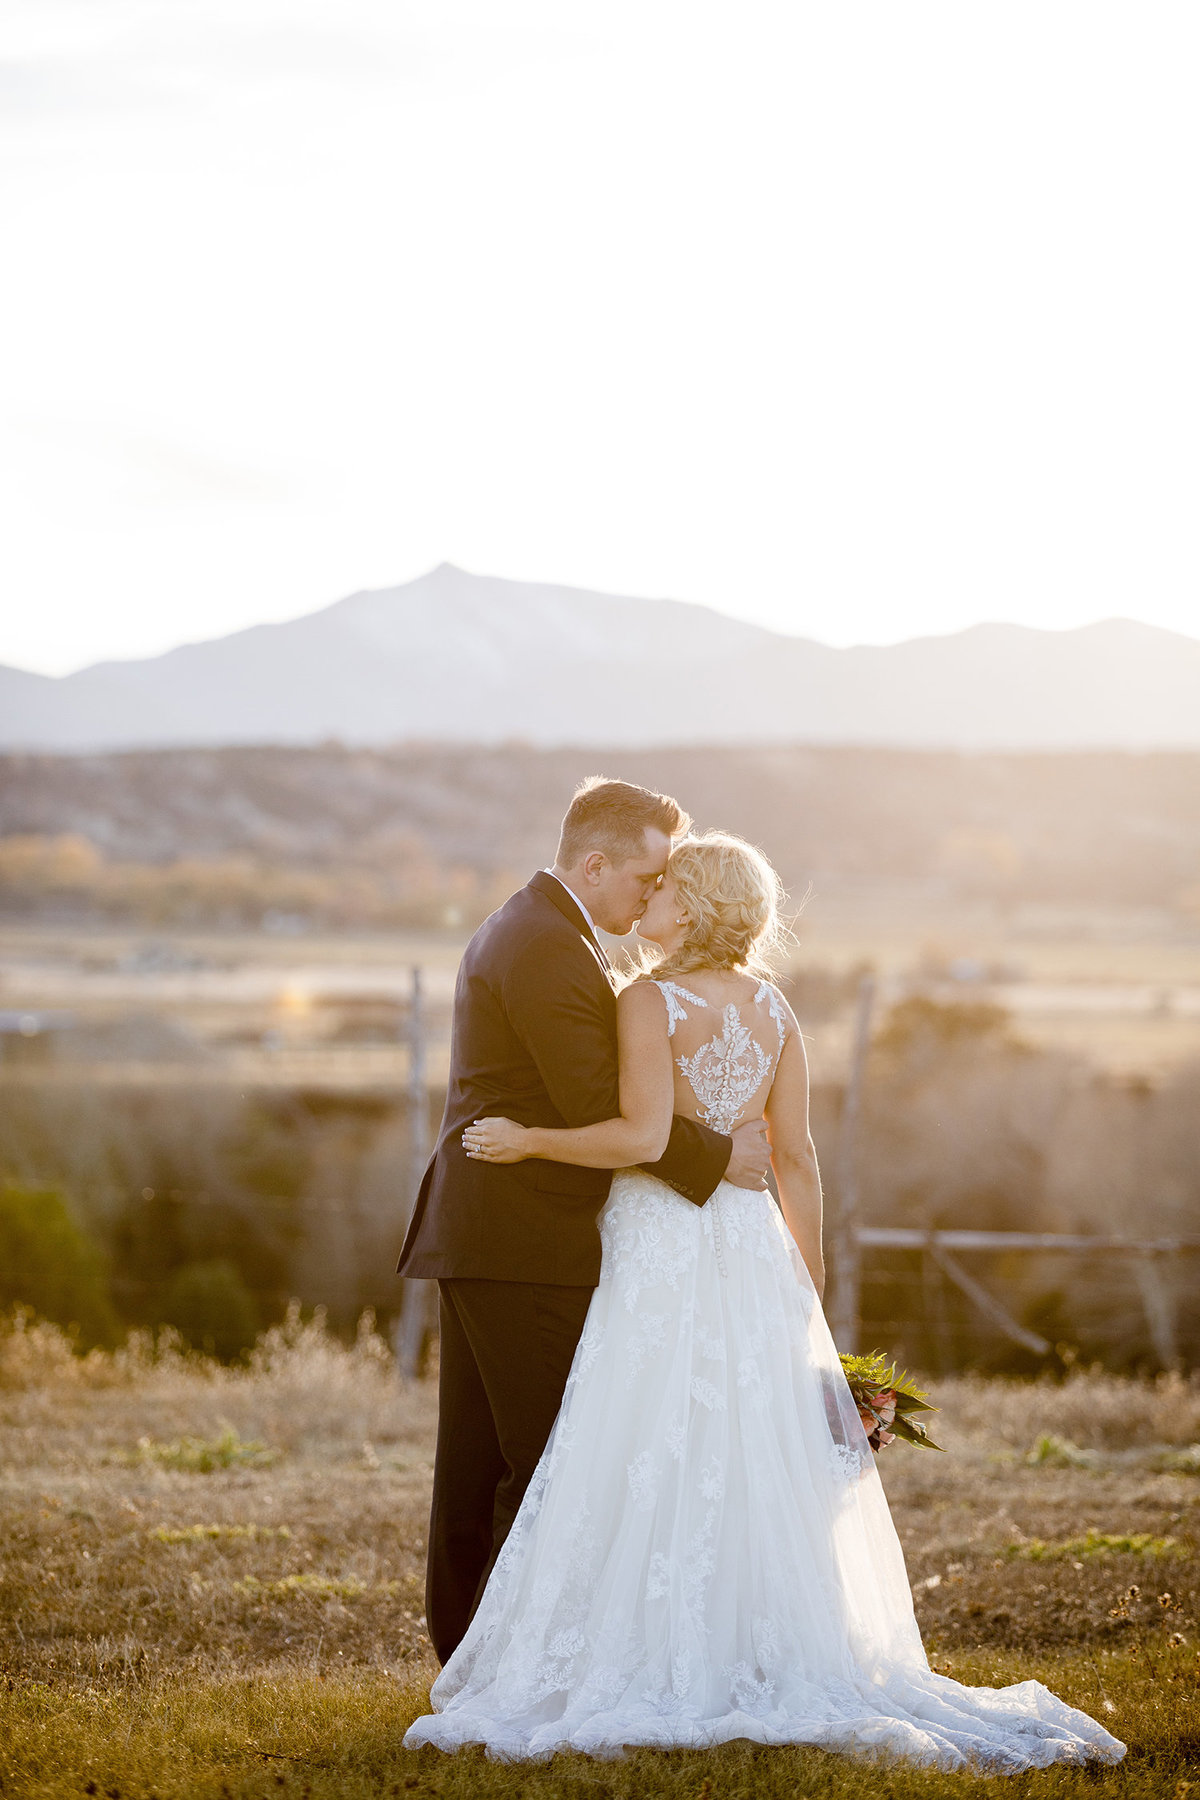 Everett Ranch Rocky Mountain Wedding Outdoor Barn Rustic Salida Colorado Alpaca Collegiate Peaks Vintage Ranch Married Kiss Mount Princeton Yale Harvard 018